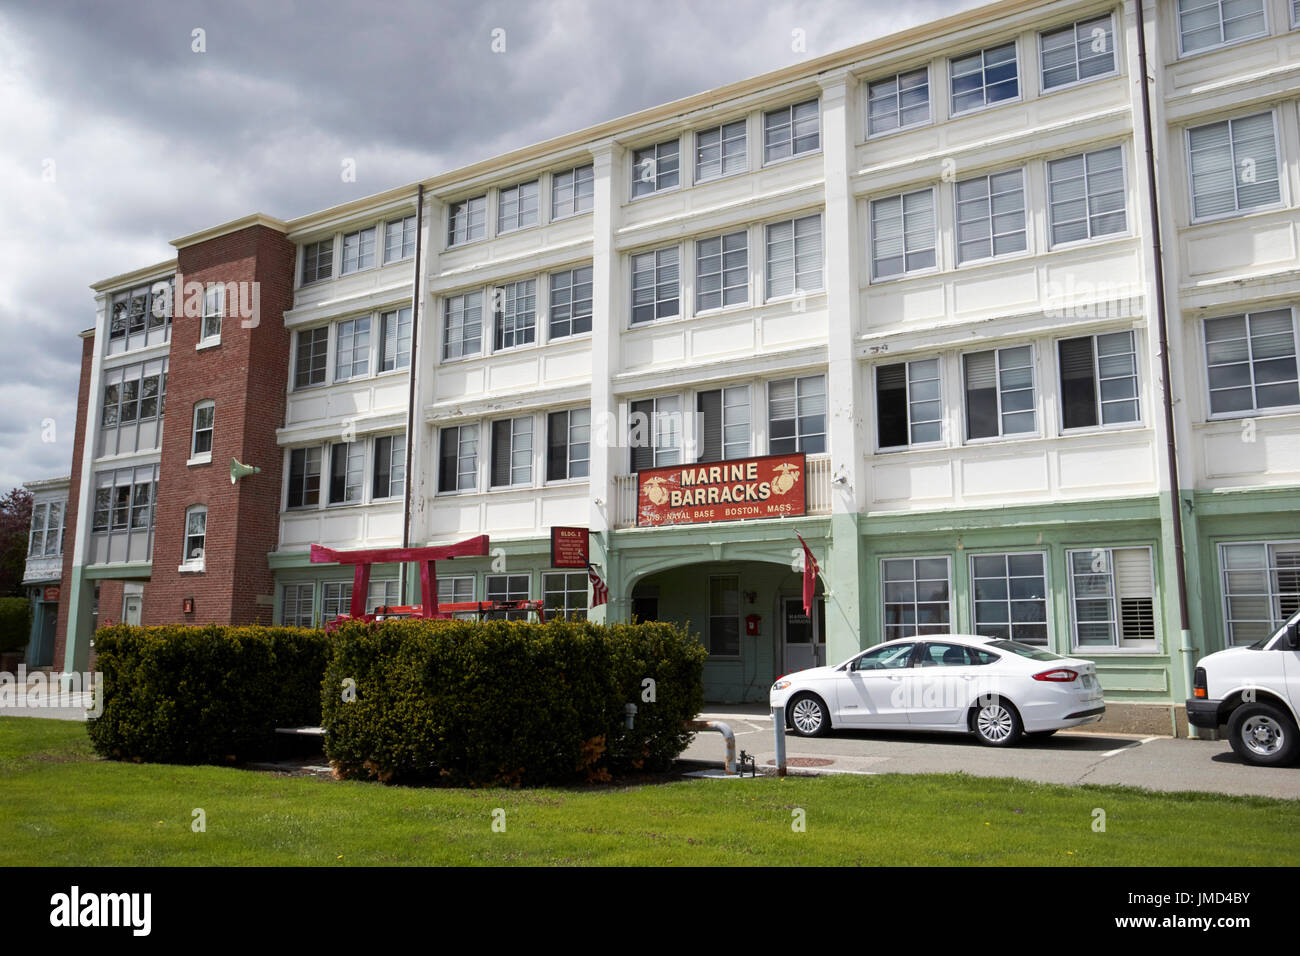 USMC marine barracks Charlestown navy yard Boston USA - Stock Image